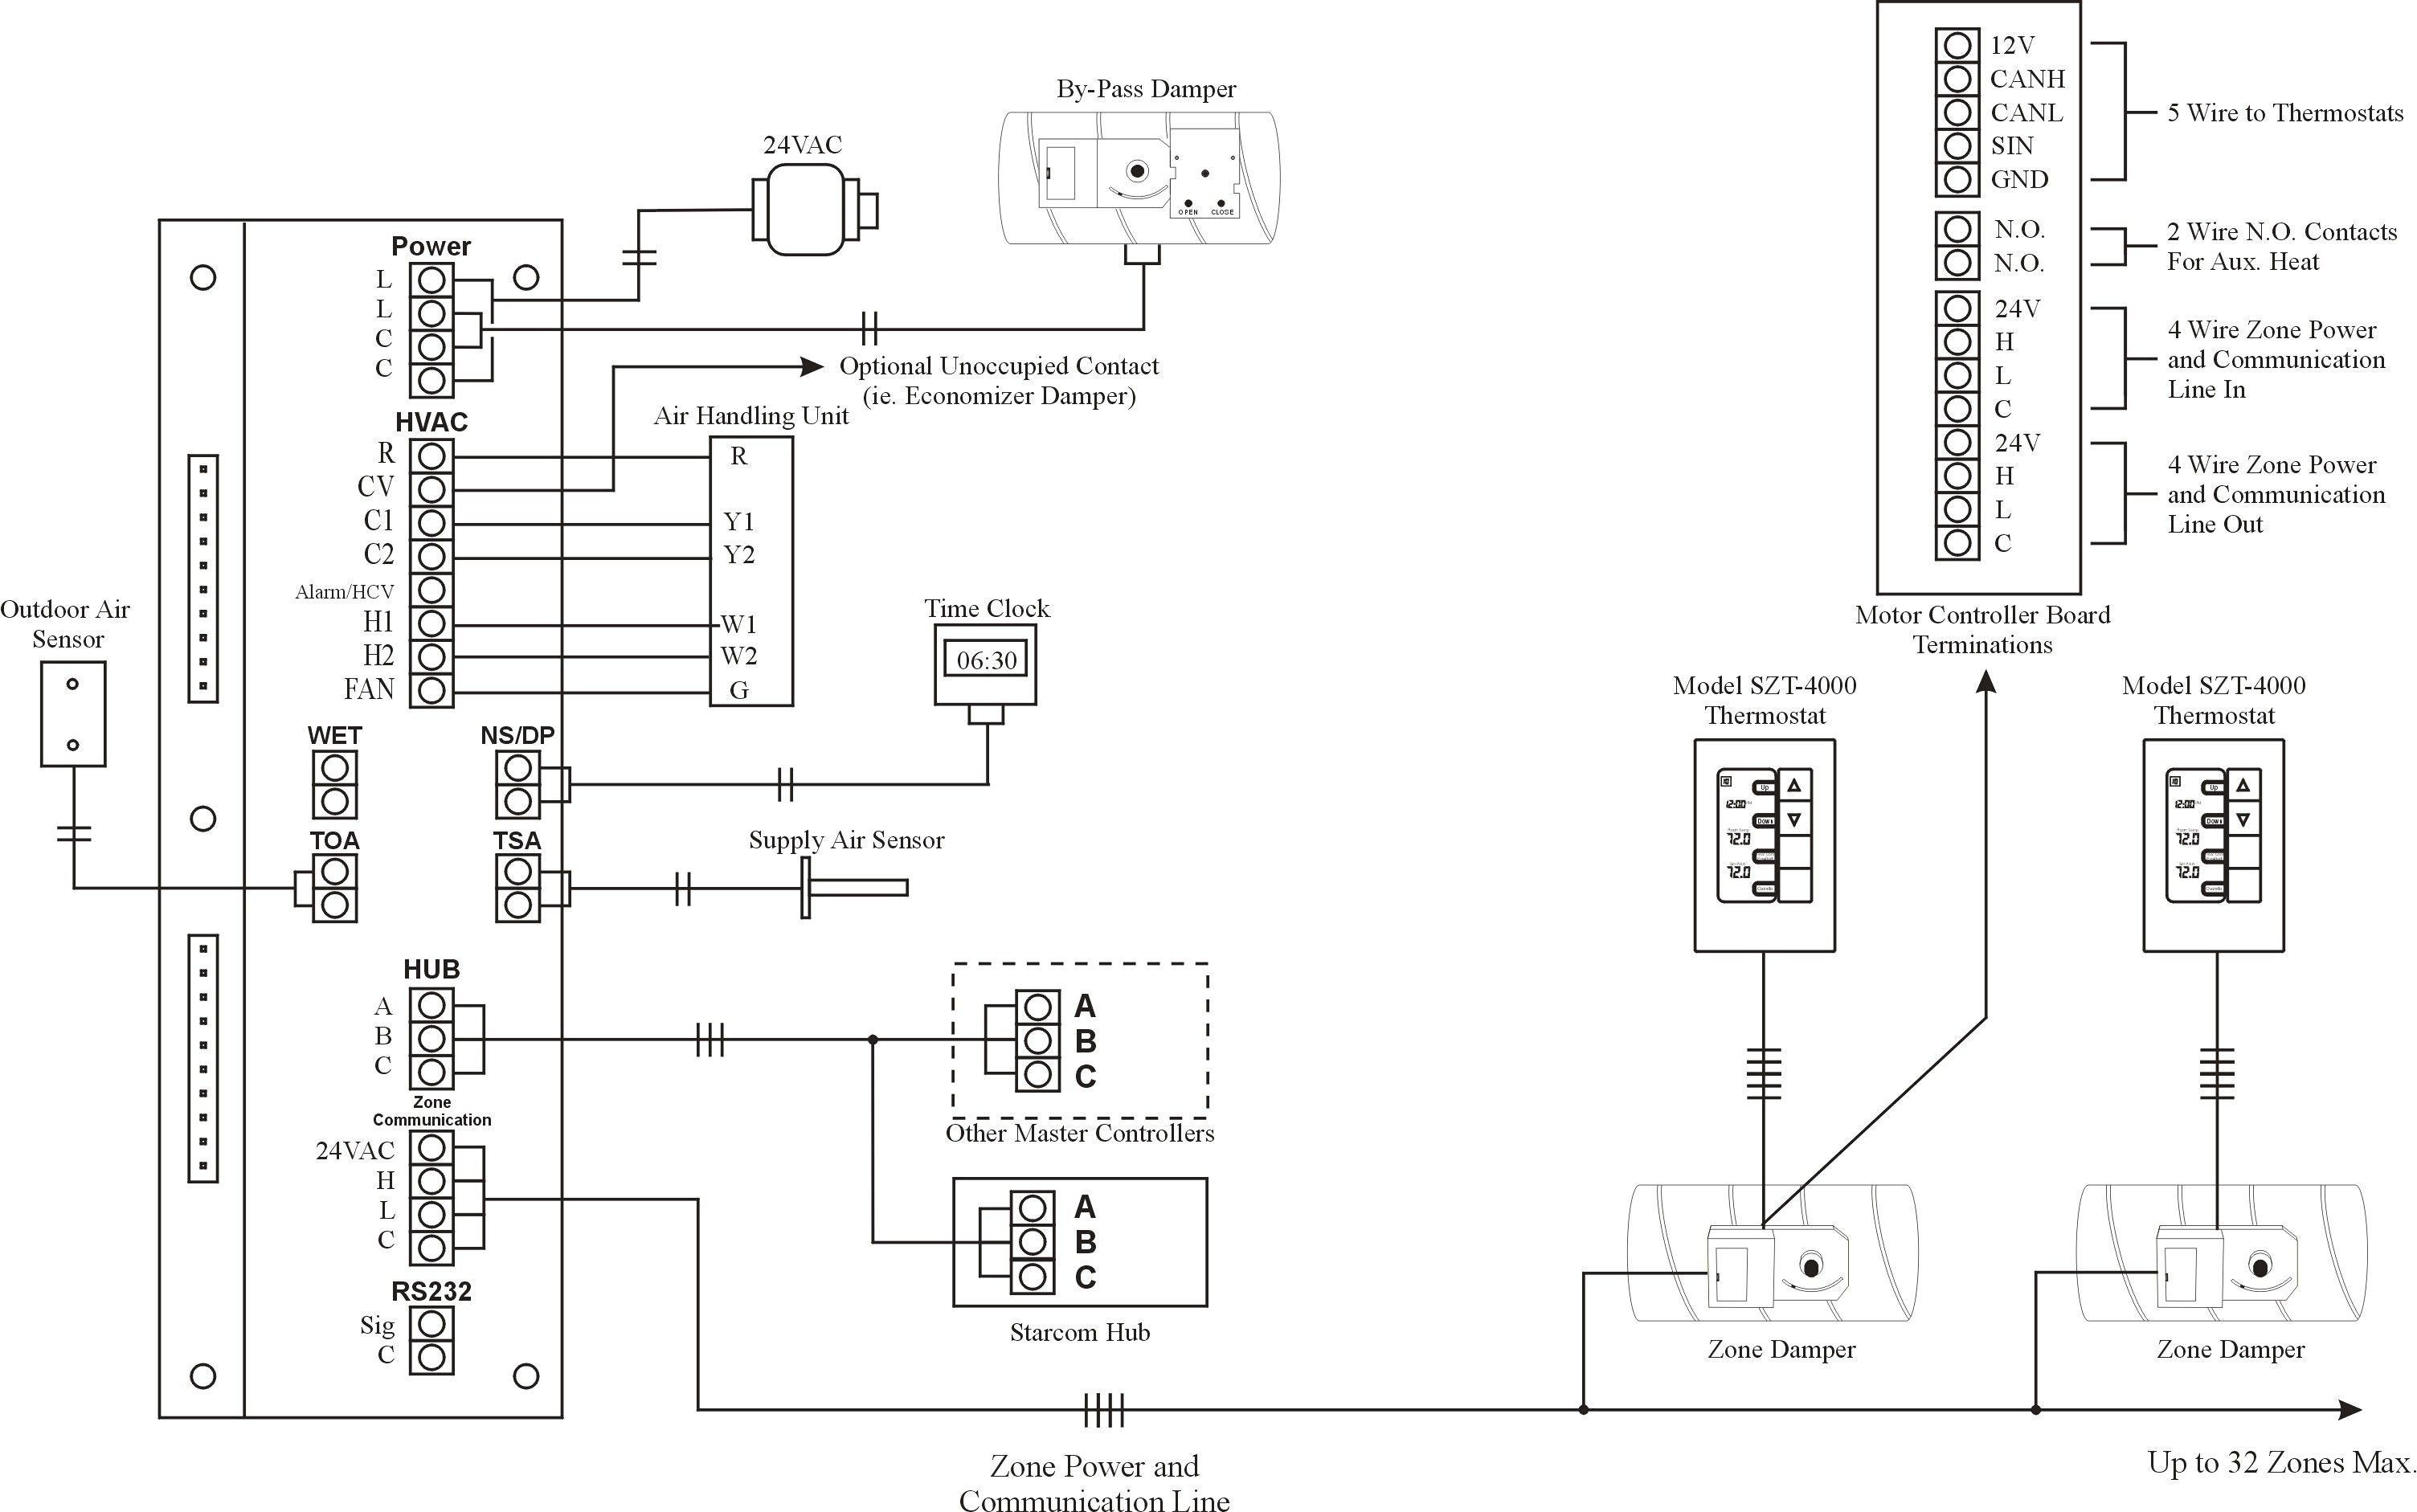 Class A Fire Alarm Wiring Diagram from i.pinimg.com